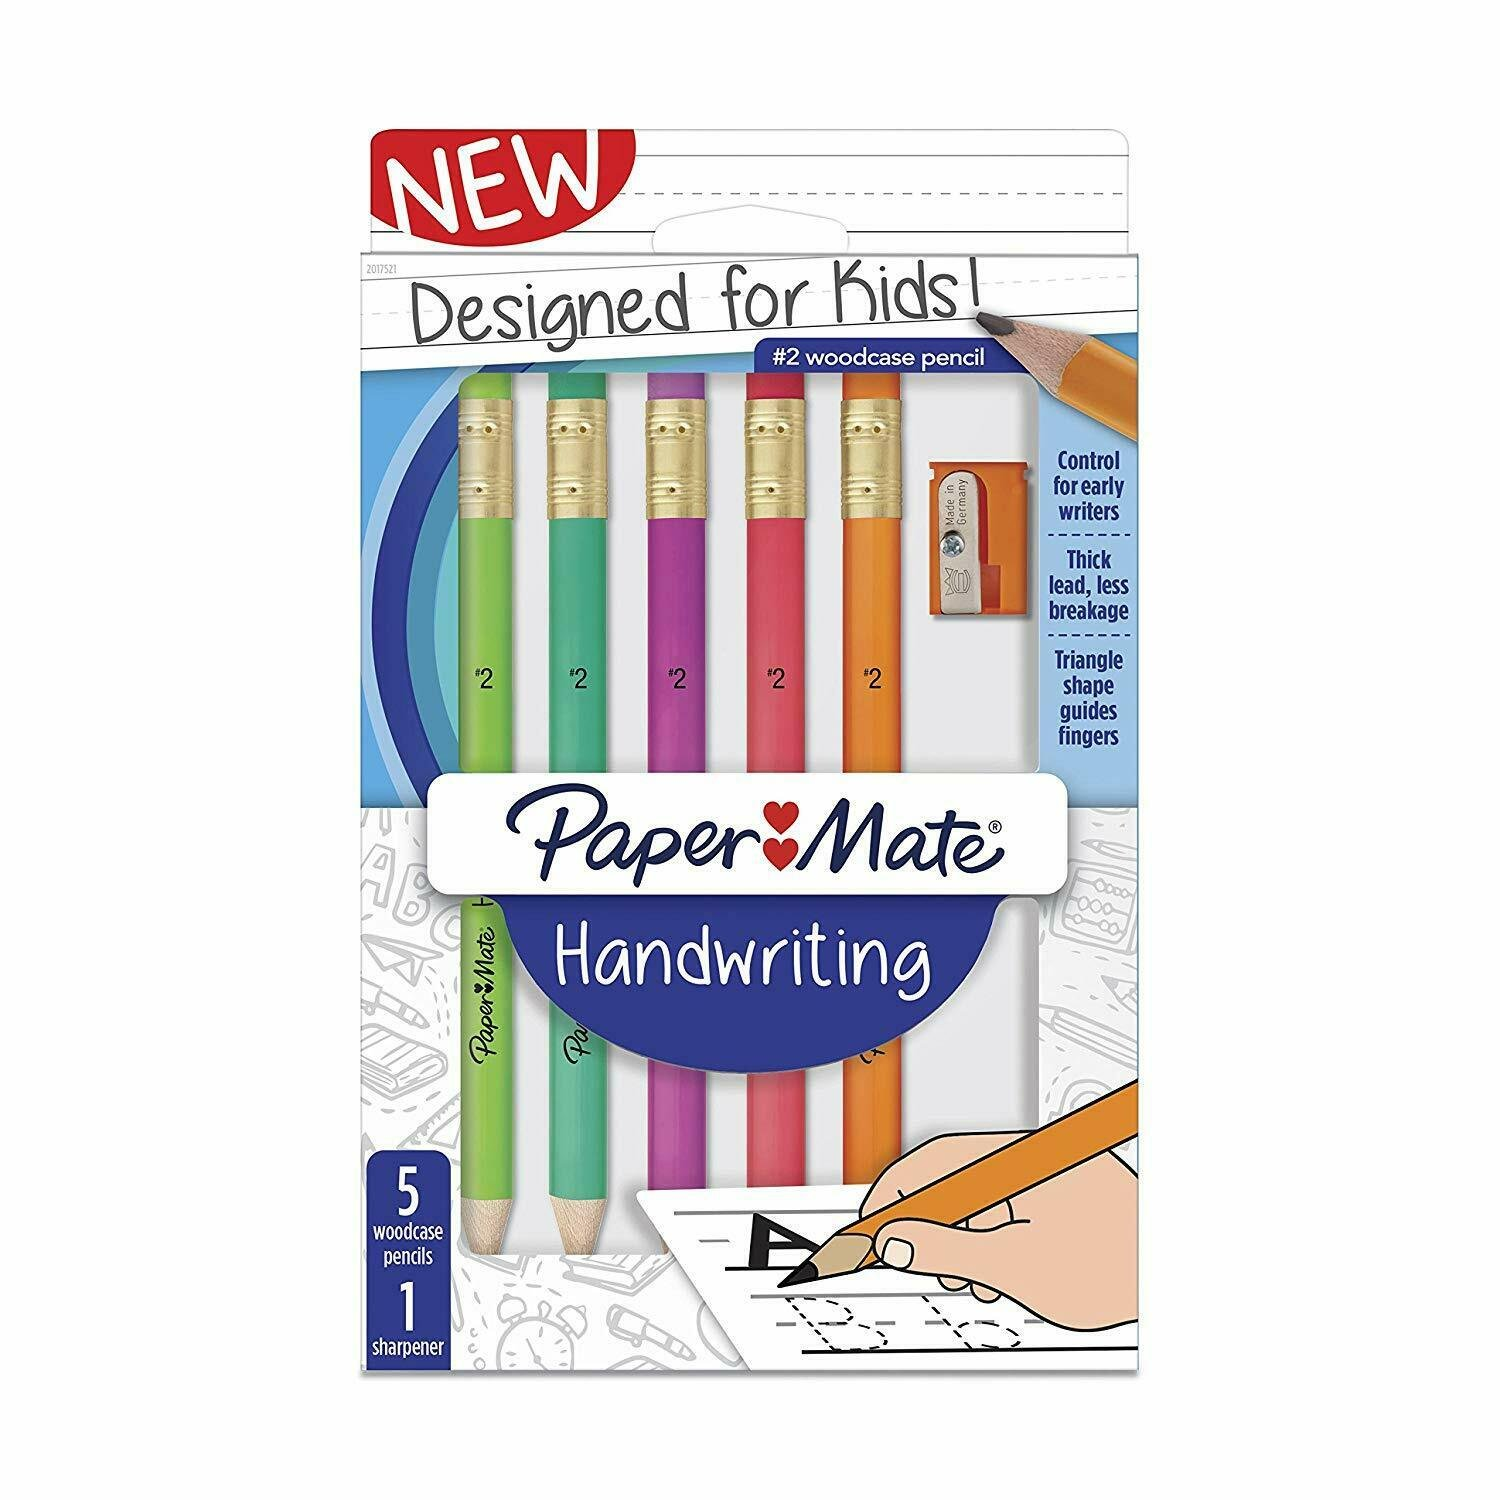 PAPERMATE PENCILS FOR KIDS